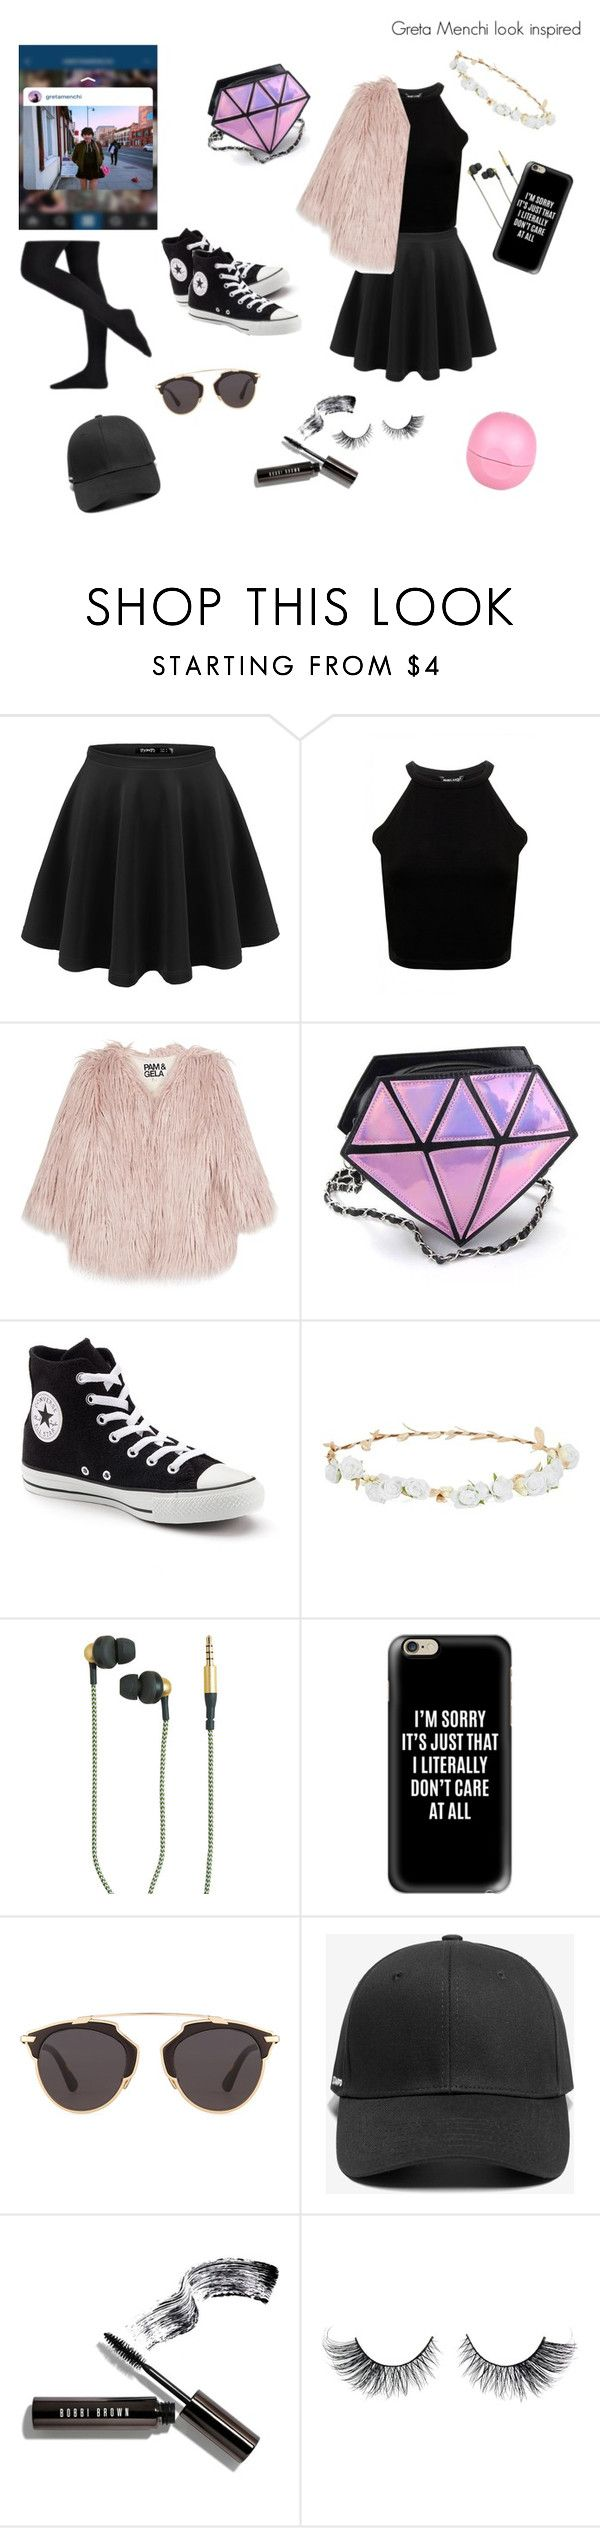 """""""Popular youtuber in italy, greta menchi look inspired"""" by gioppins ❤ liked on Polyvore featuring Pam & Gela, Converse, Robert Rose, Kreafunk, Casetify, Christian Dior, Bobbi Brown Cosmetics and River Island"""